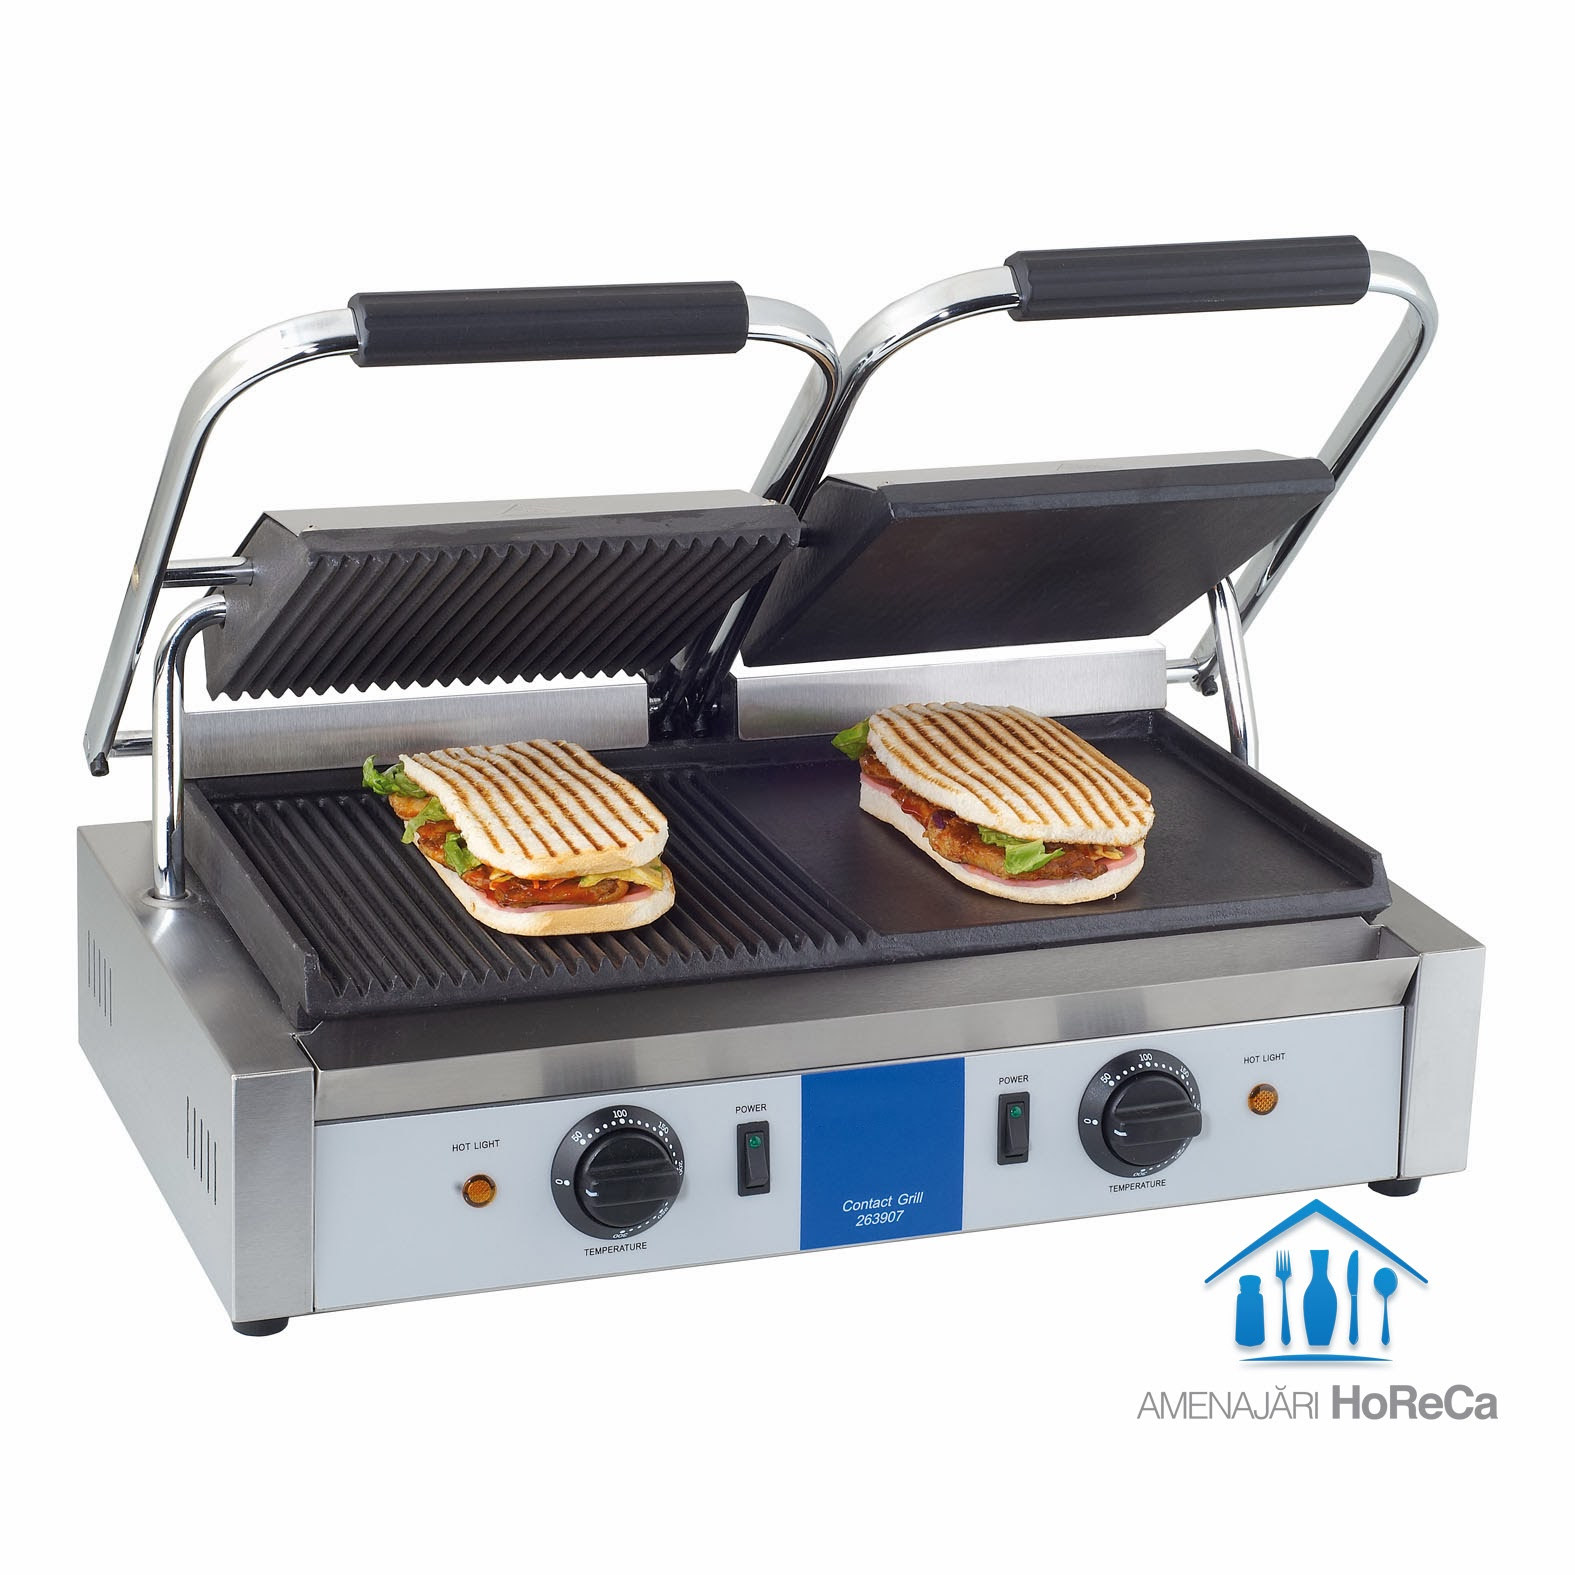 Grill electric profesional, model dublu, grill electic profesional